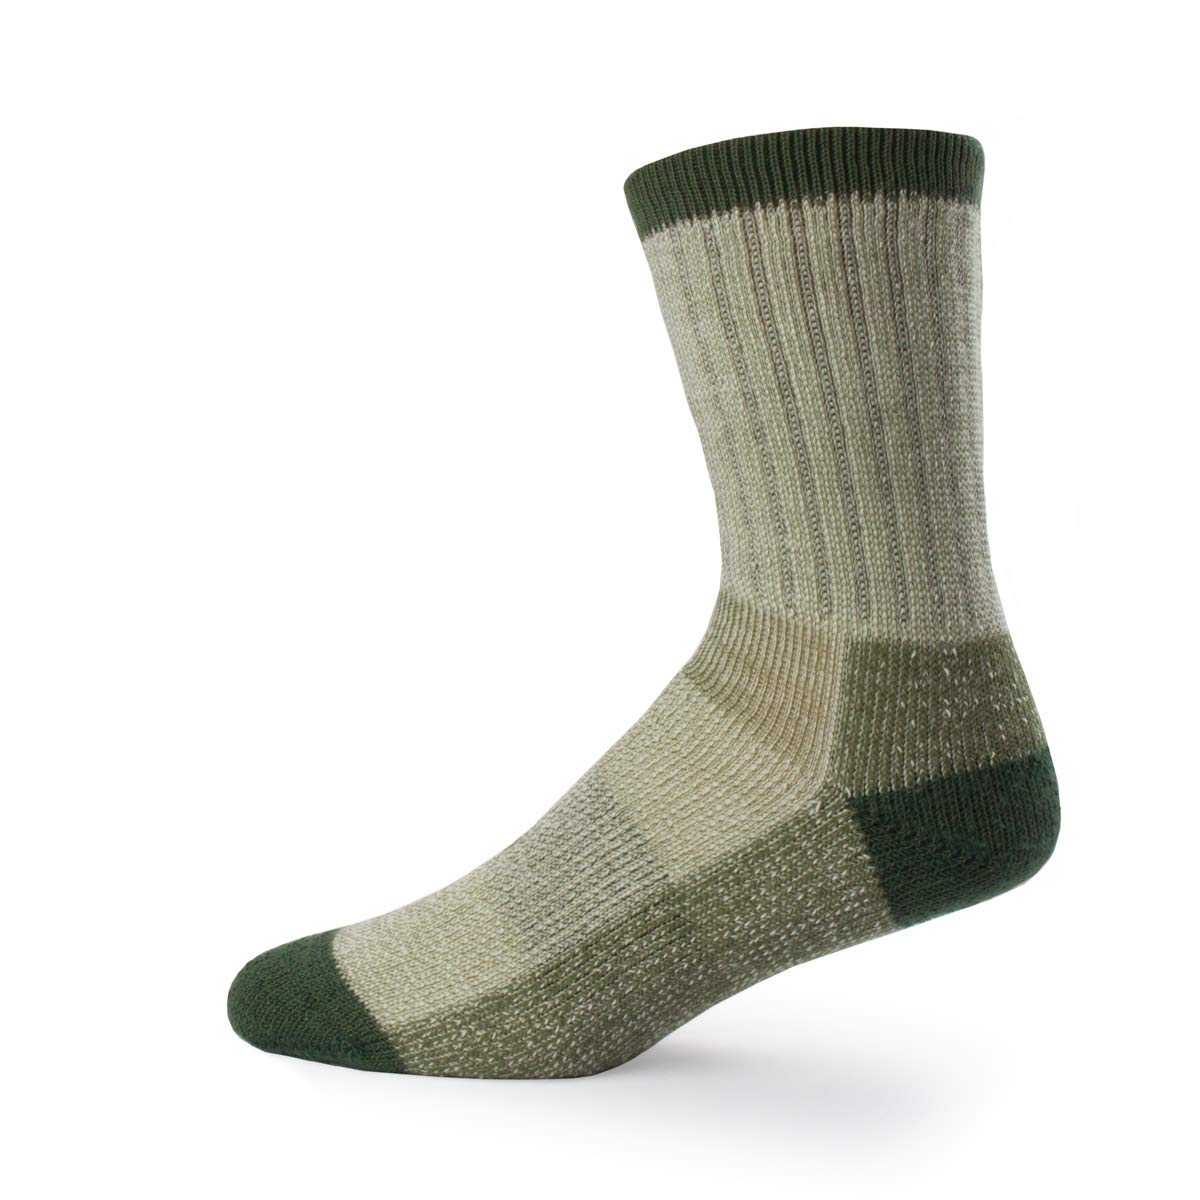 Minus33 Merino Wool Day Hiker Sock, Olive, Large by Minus33 Merino Wool